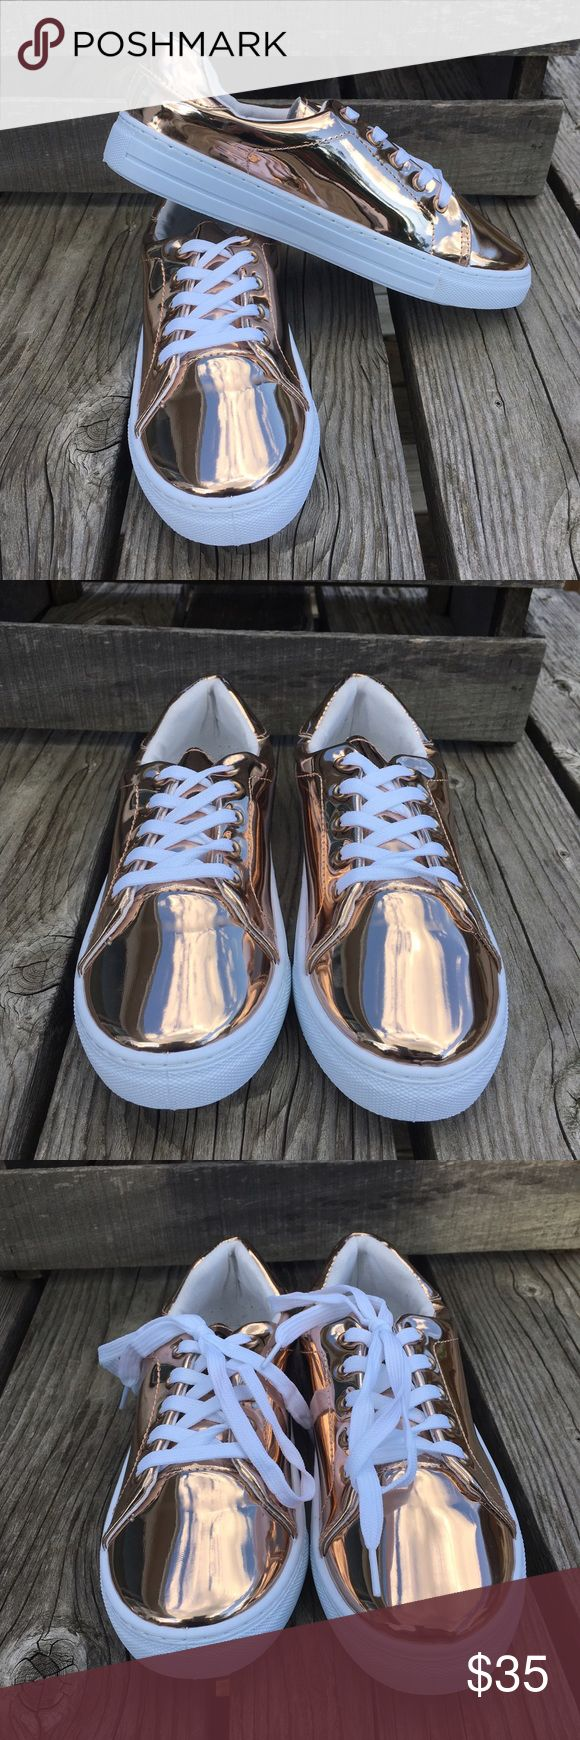 🆕List!💫 Metallic Rose Gold Lace-Up Sneaker! NEW! So fun for summer and fall! Metallic rose gold with white rubber soles and white laces. Soles approximately one inch. Sizes 6 - 10. New in box direct from wholesaler. Friendsnfashion Boutique Shoes Sneakers